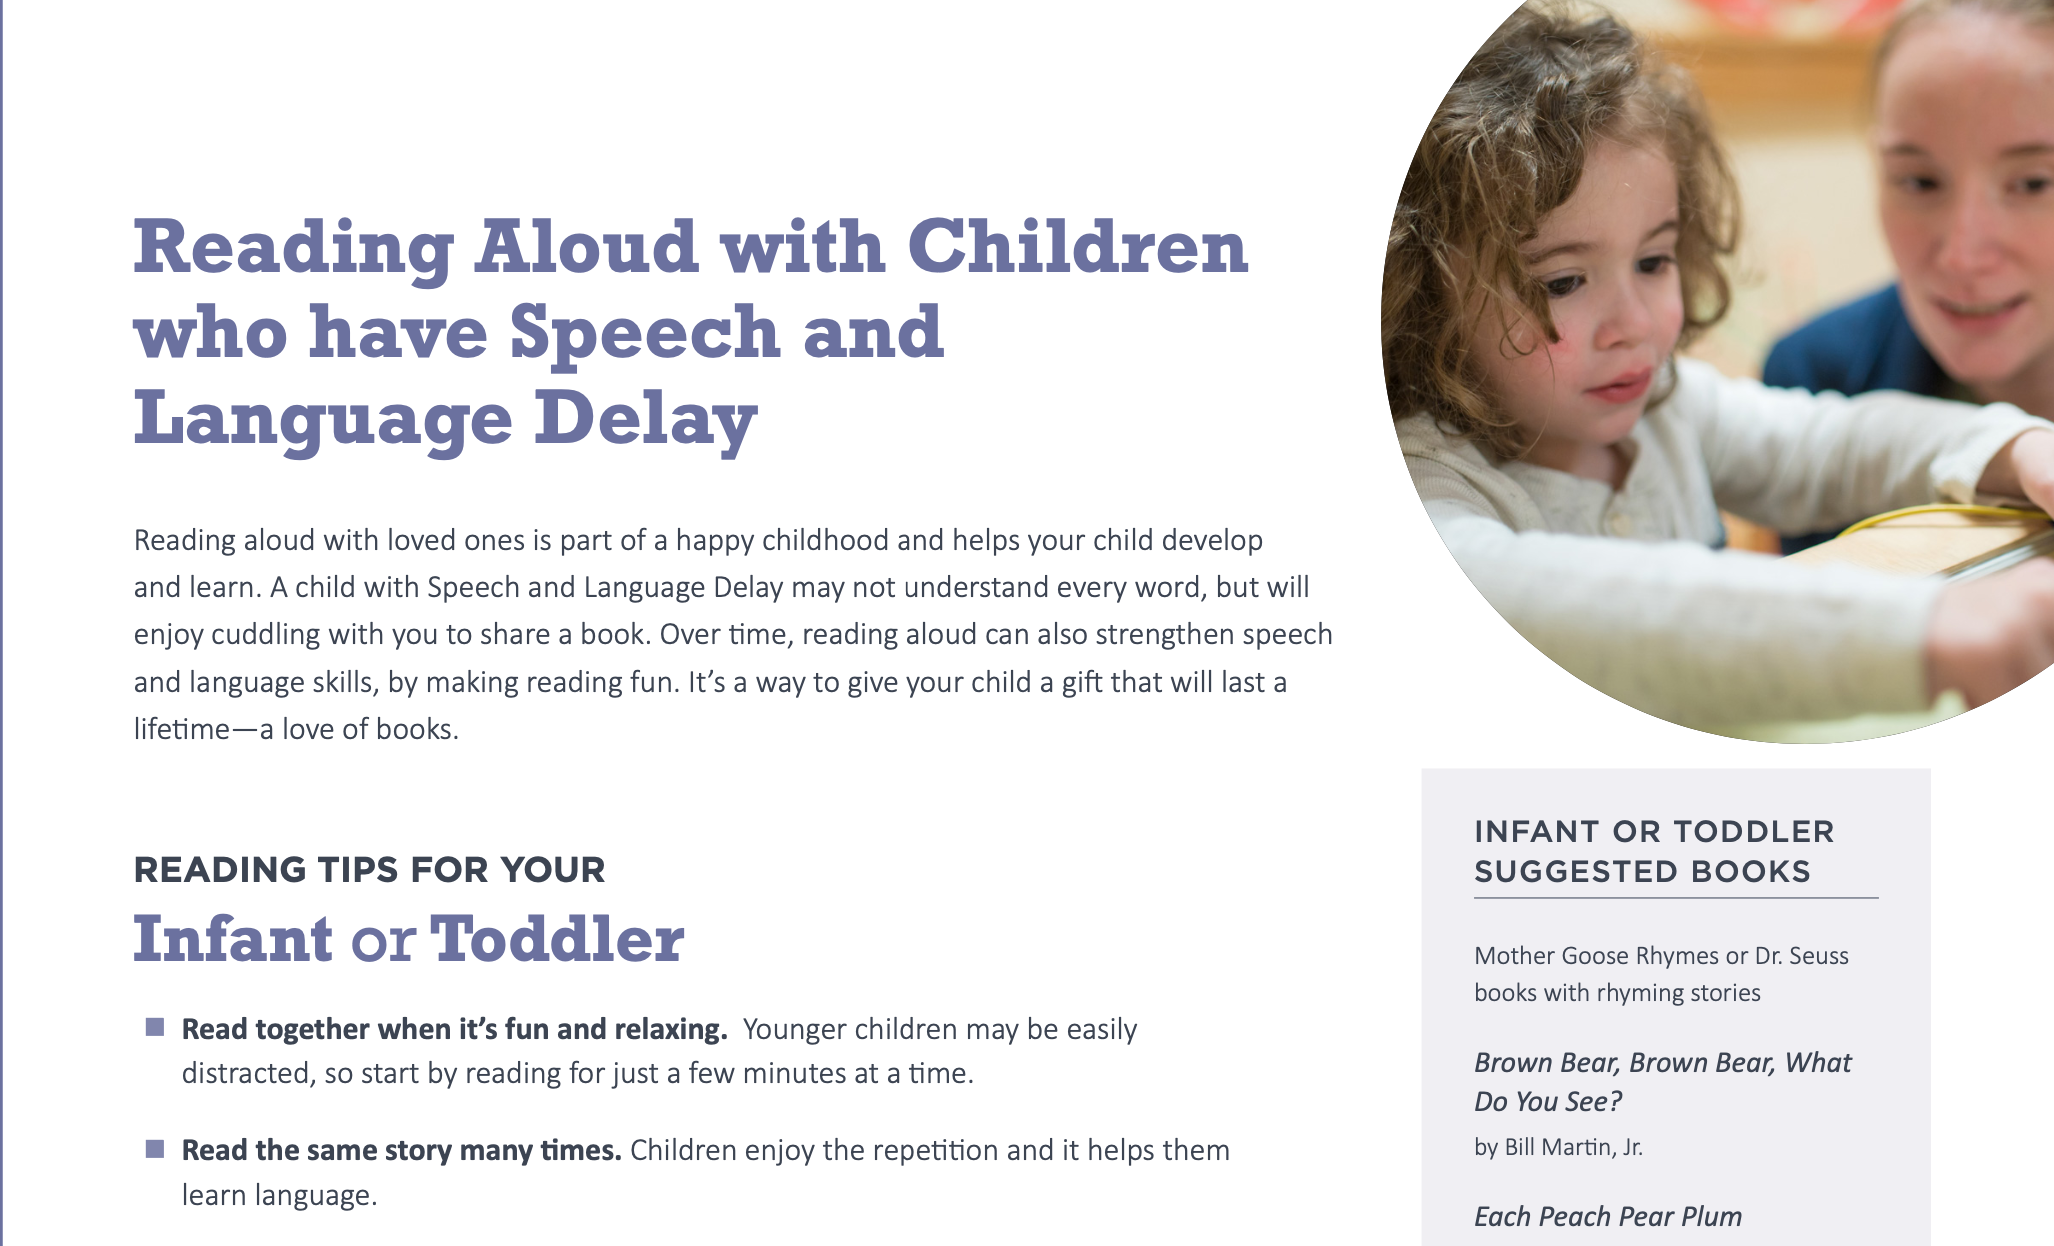 Readibg Aloud wirth Children with Language Delays Image